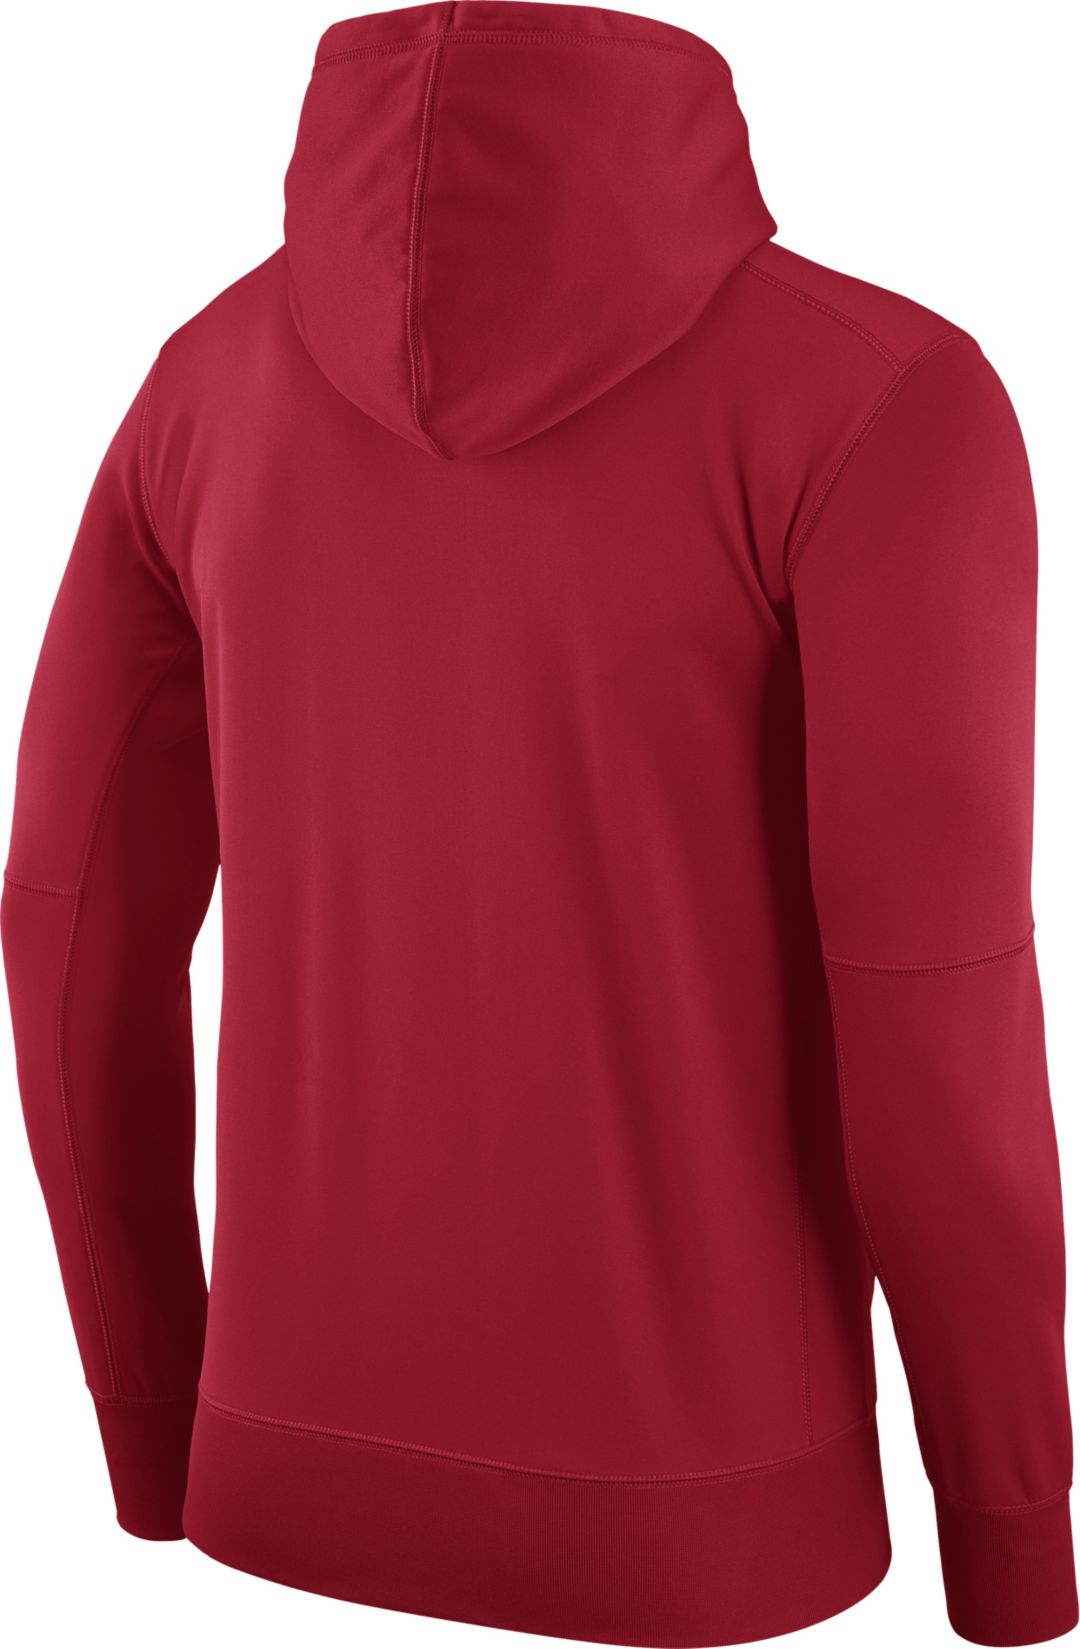 new product 9a035 b7a76 Nike Men's Washington Nationals Dri-FIT Red Therma Pullover Hoodie